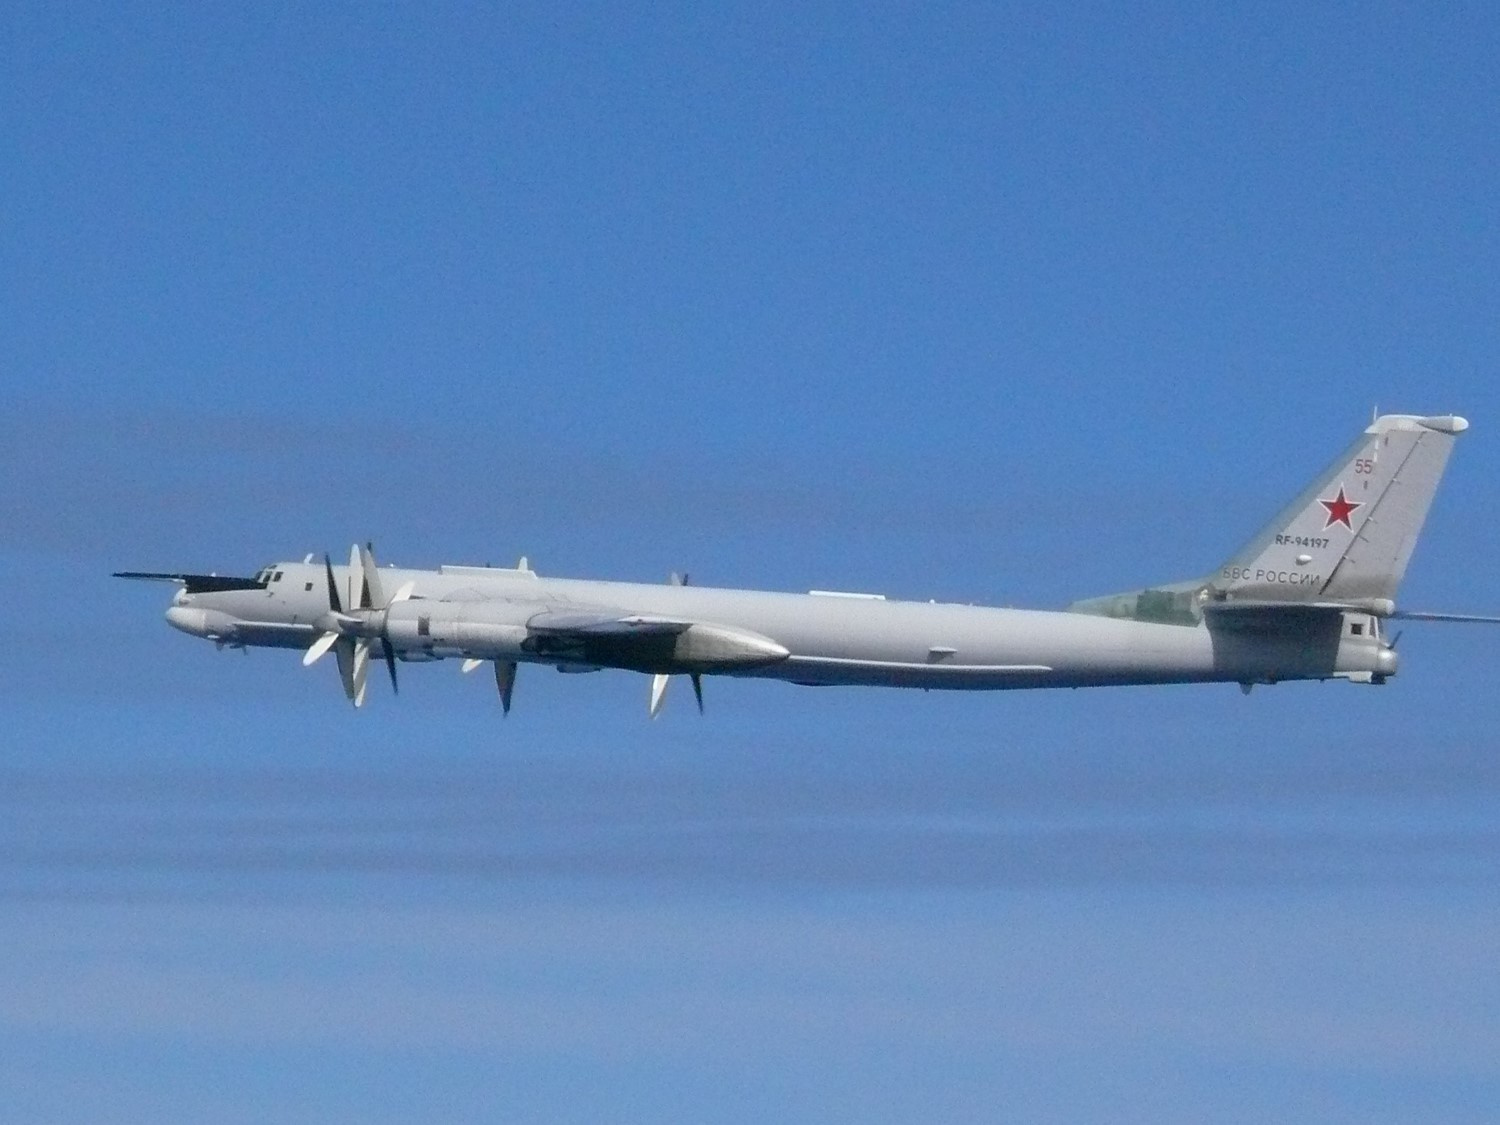 A Russian TU-95 bomber flies over East China Sea in this handout picture taken by Japan Air Self-Defence Force and released by the Joint Staff Office of the Defense Ministry of Japan July 23, 2019. Joint Staff Office of the Defense Ministry of Japan/HANDOUT via REUTERS